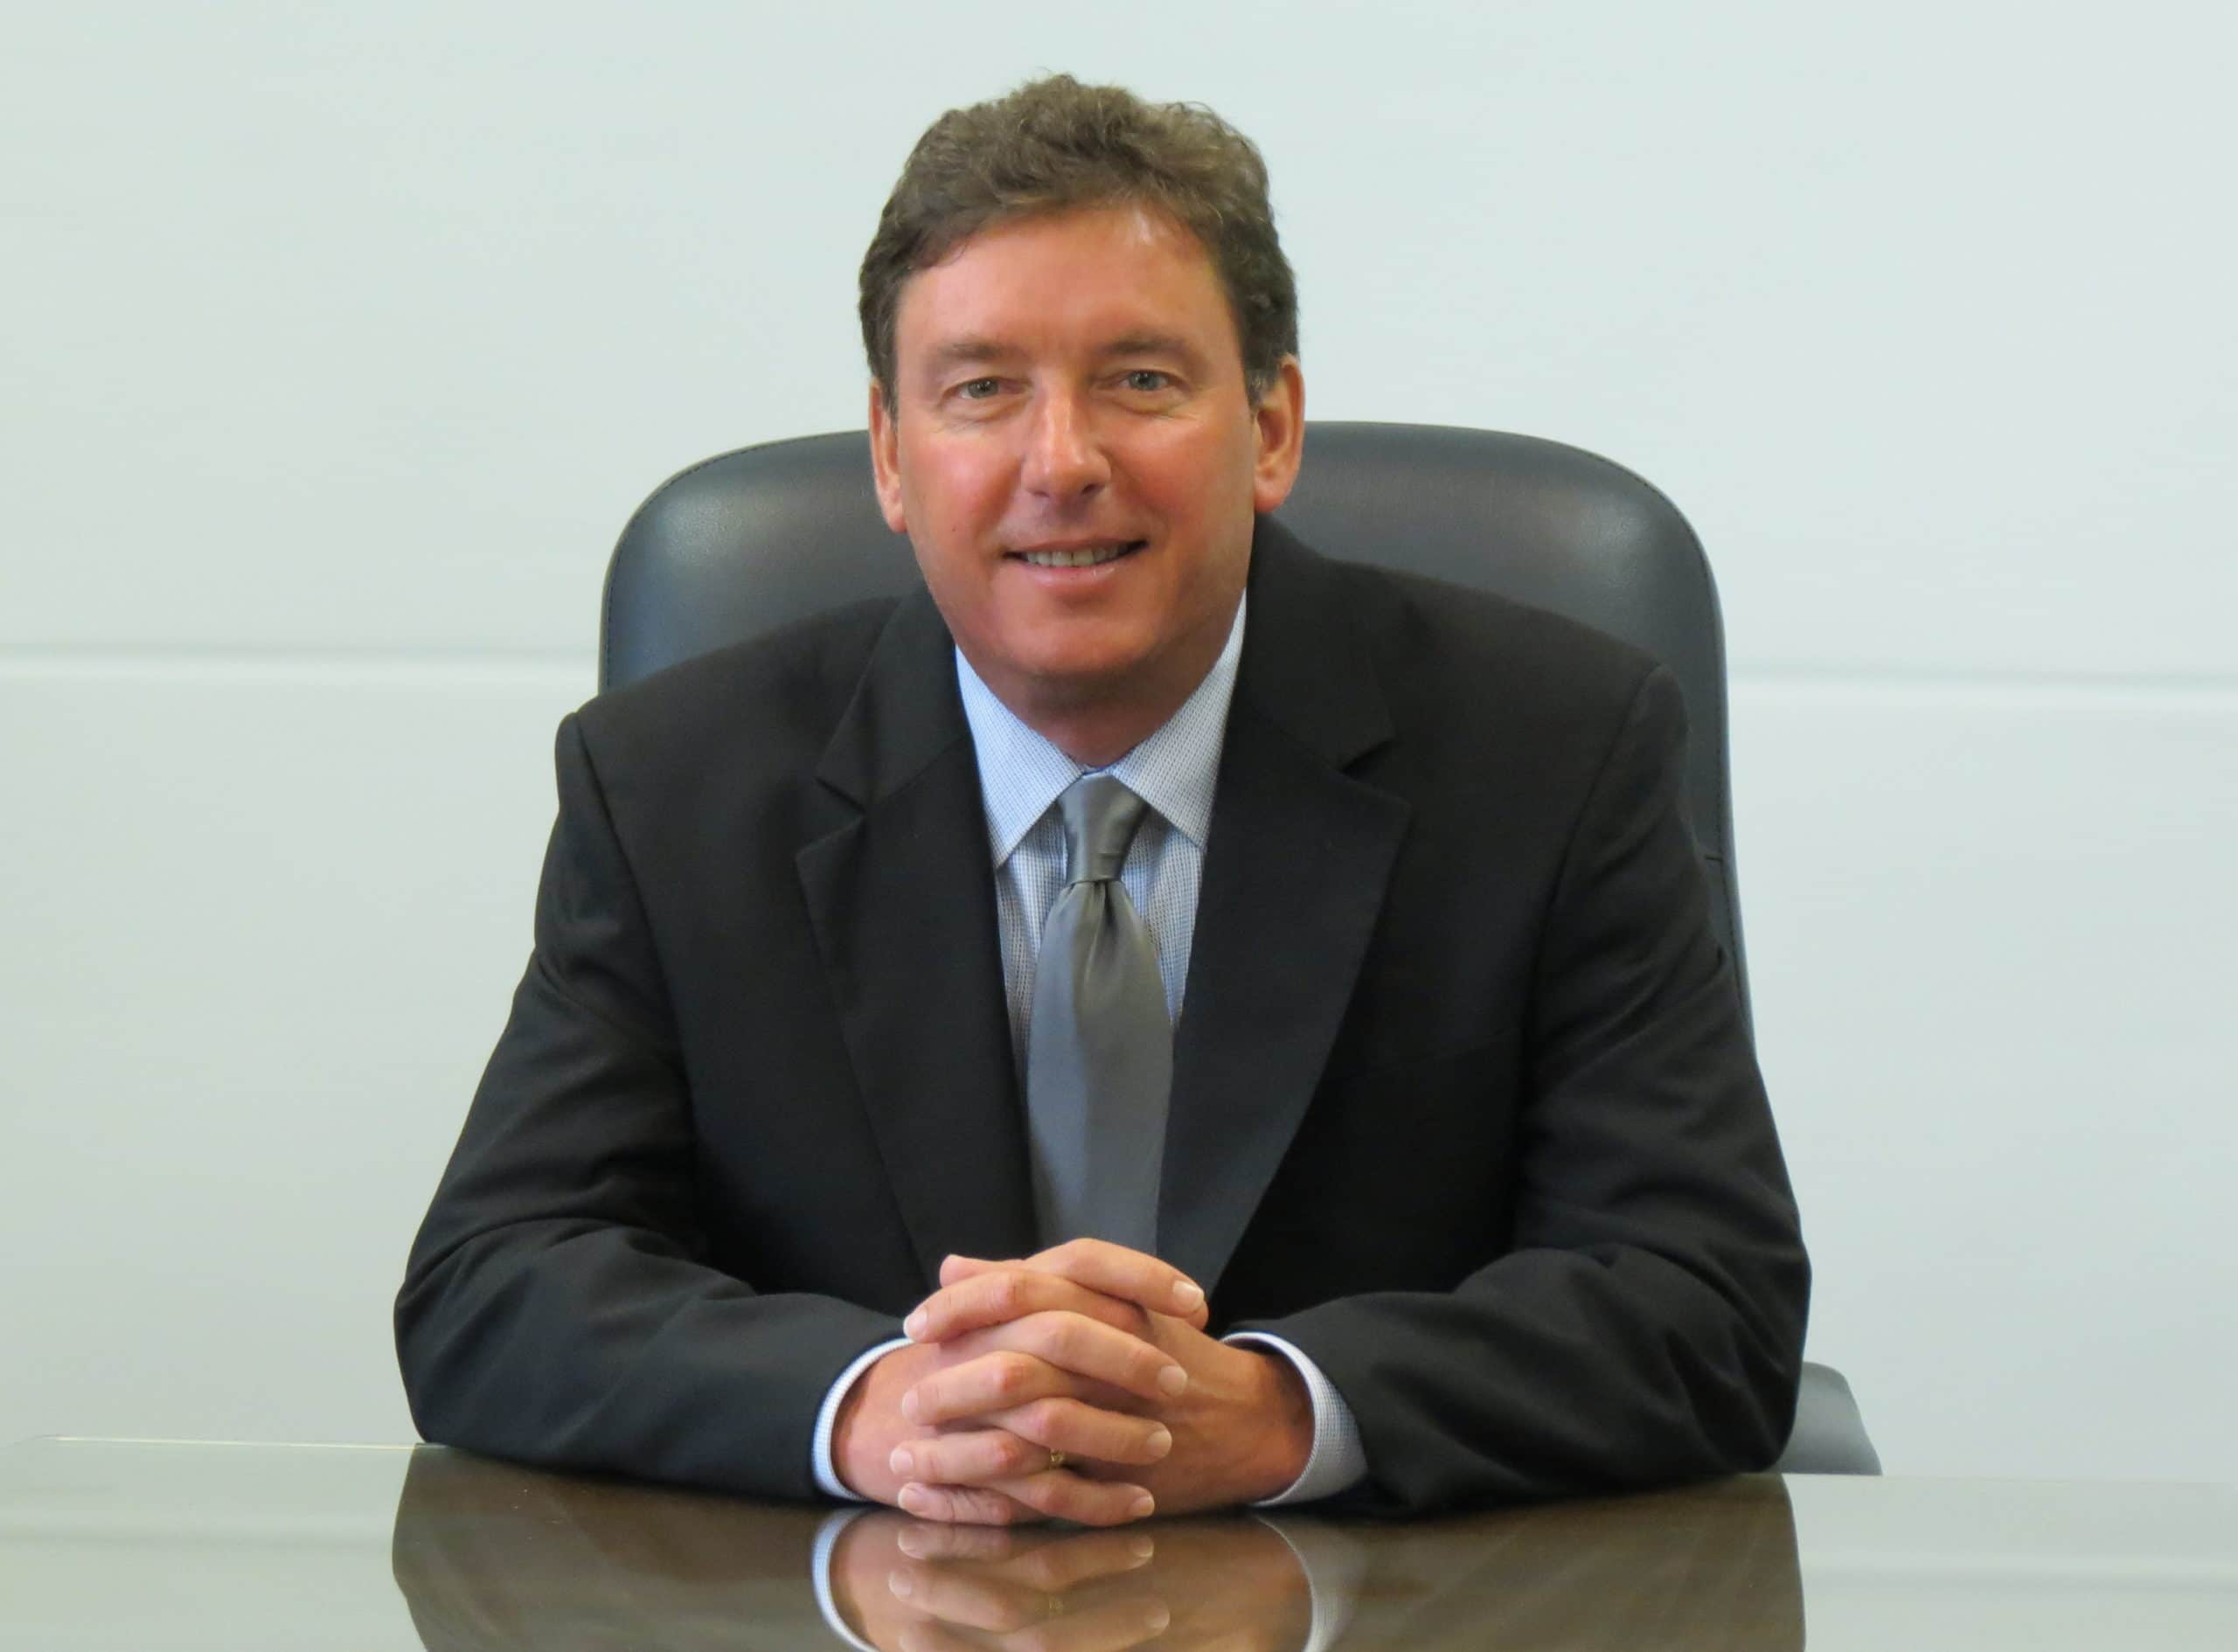 Eric Treiber, President & CEO of Chicago White Metal